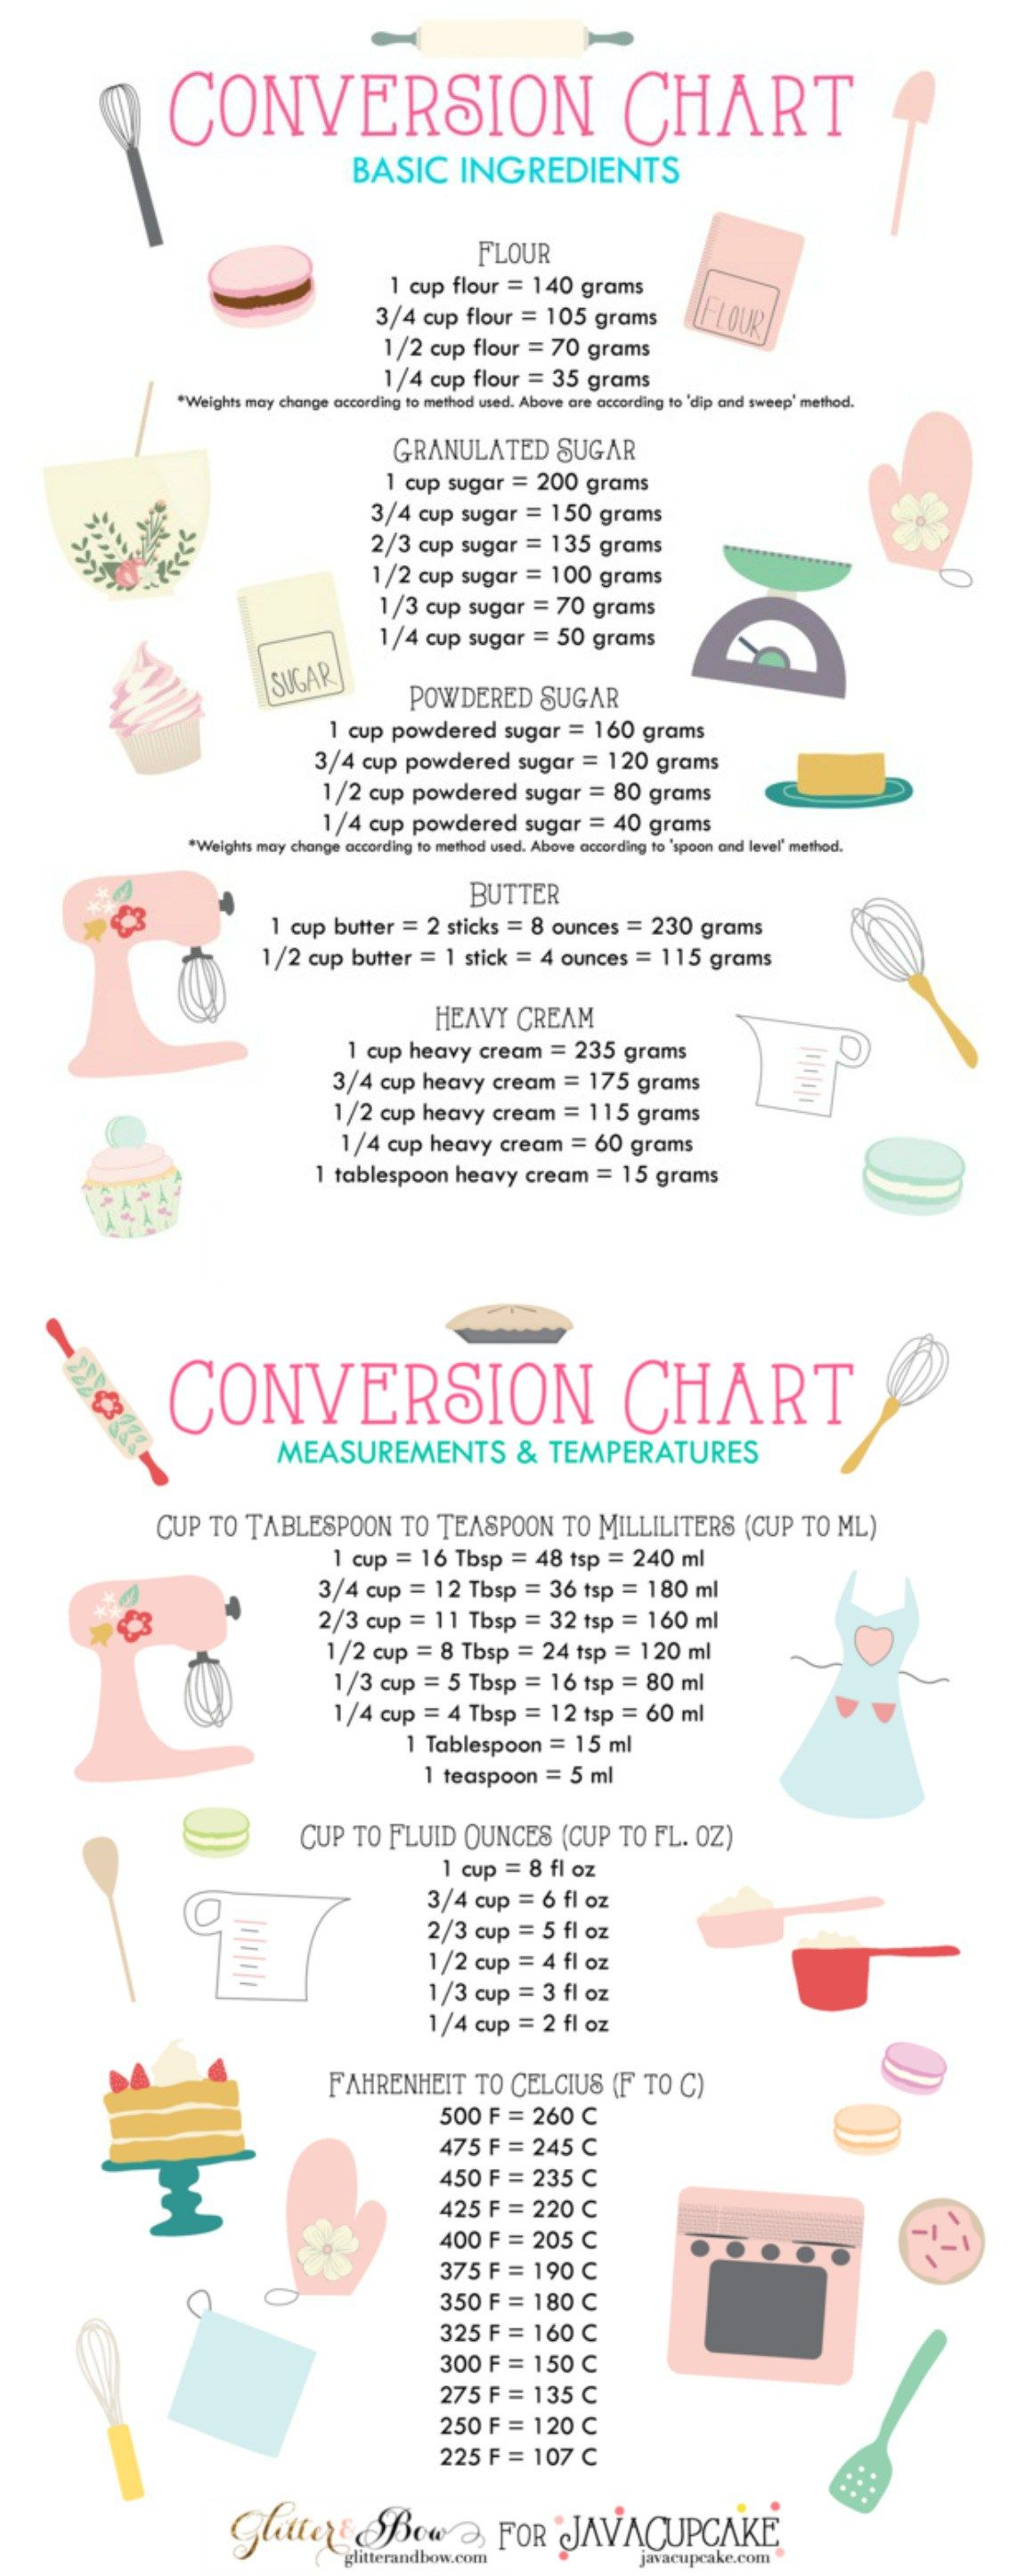 10 cooking tips and hacks to make your life easier chart food and cooking conversion chart geenschuldenfo Image collections